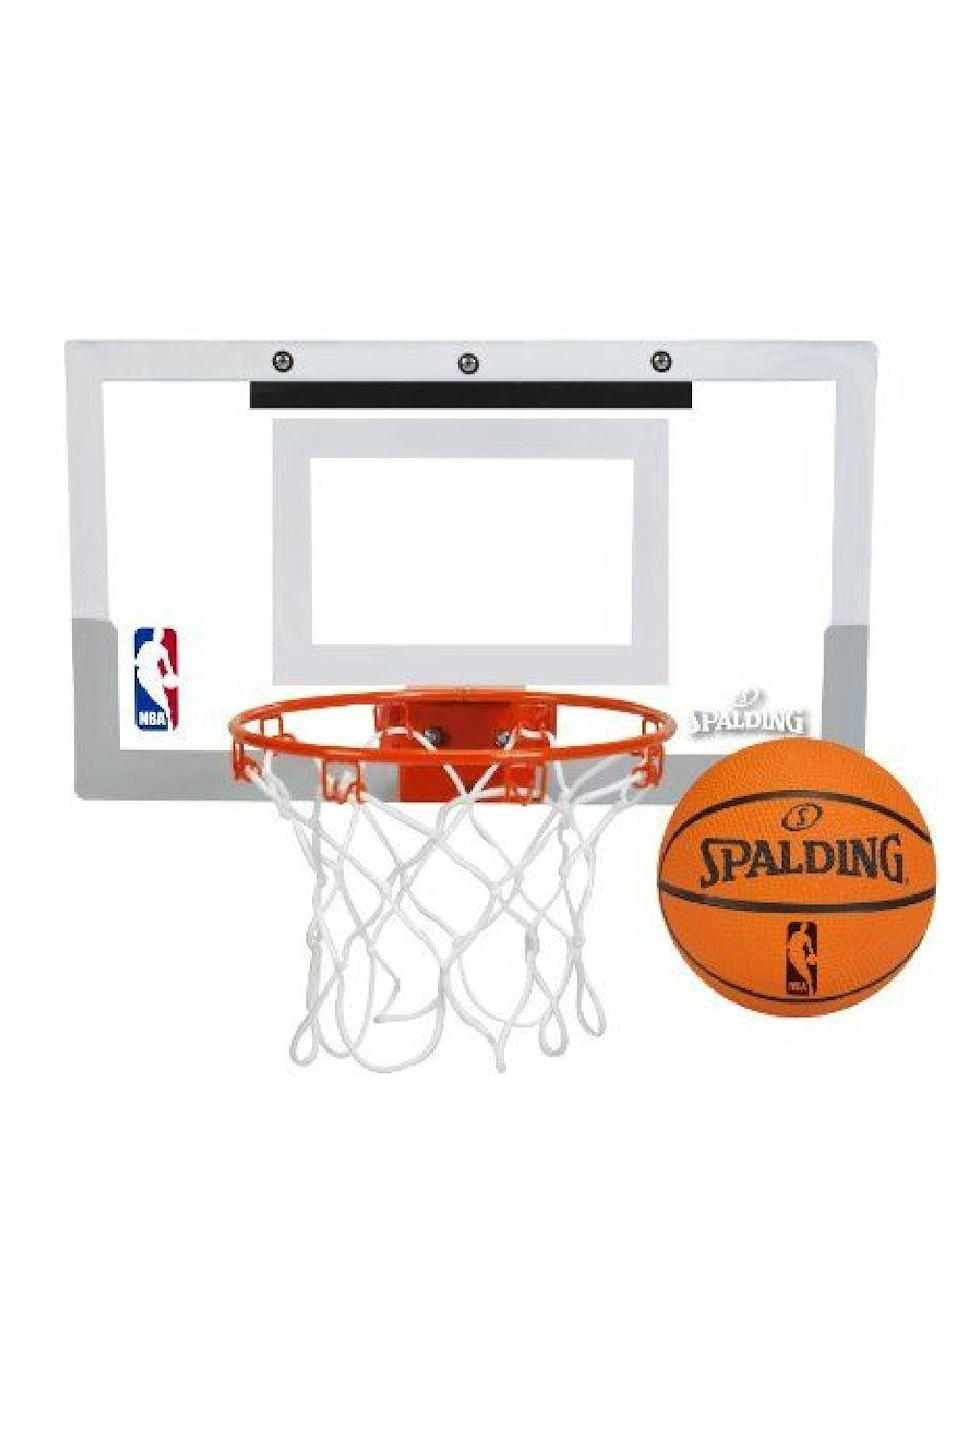 """<p><strong>Spalding</strong></p><p>amazon.com</p><p><strong>$27.99</strong></p><p><a href=""""https://www.amazon.com/dp/B0085AOZIK?tag=syn-yahoo-20&ascsubtag=%5Bartid%7C10049.g.5199%5Bsrc%7Cyahoo-us"""" rel=""""nofollow noopener"""" target=""""_blank"""" data-ylk=""""slk:Shop Now"""" class=""""link rapid-noclick-resp"""">Shop Now</a></p><p>A mini basketball hoop (that also comes with a ball!) is a great not-too-serious gift, and it's perfect if he enjoys nothing more than watching players dunk on each other.</p>"""